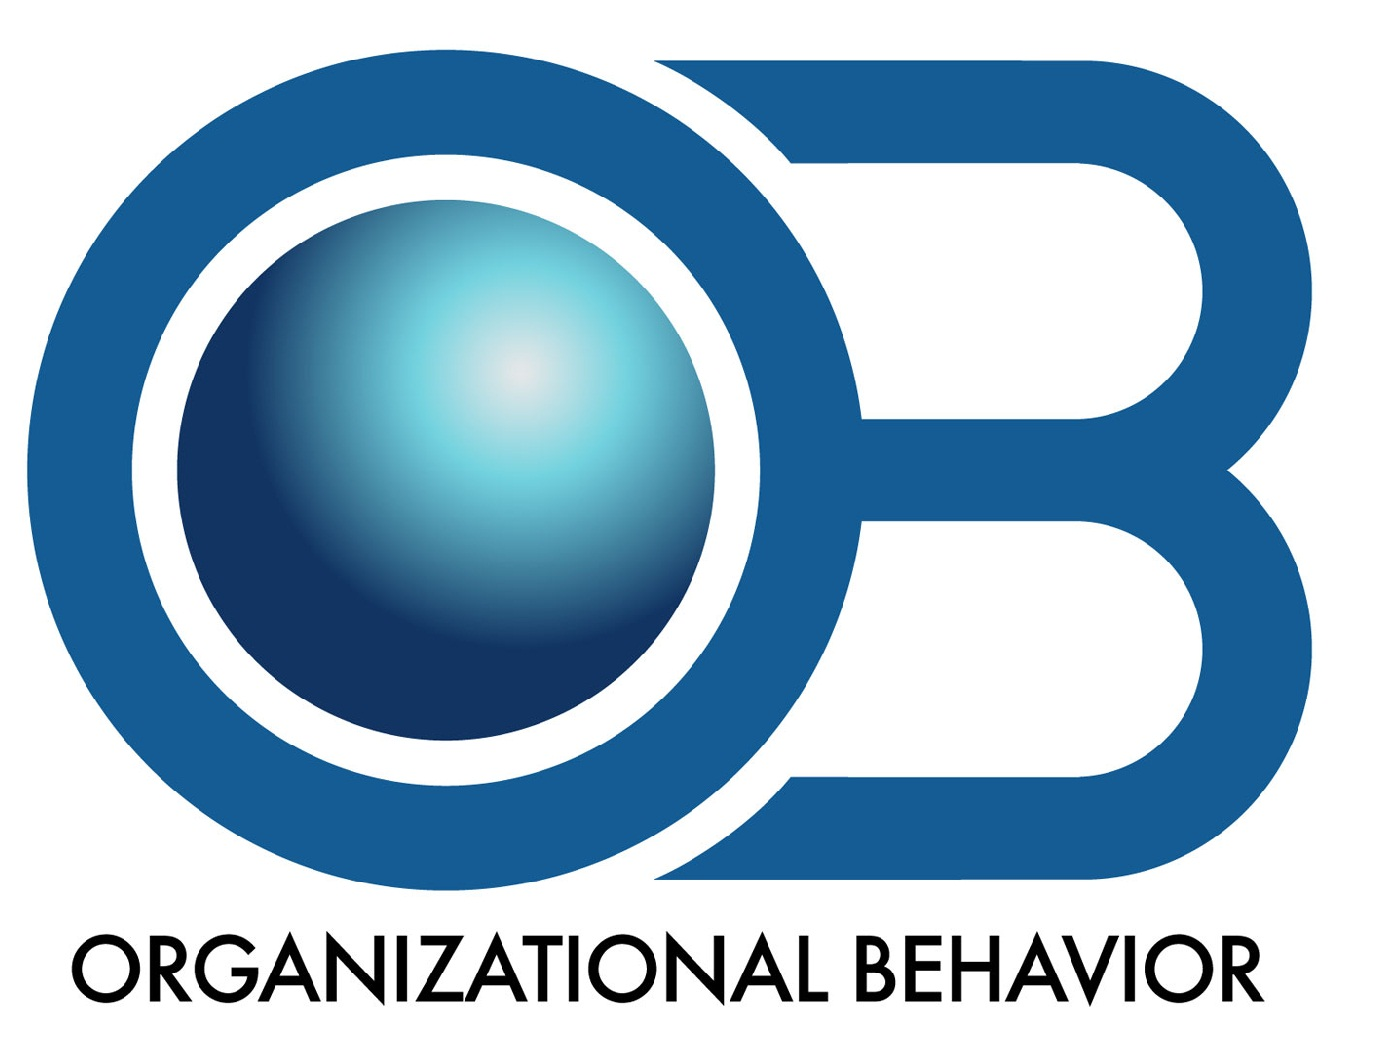 approaches to organizational behaviour Briefly explain the four main approaches to organisational behaviour maslow's hierarchy perhaps the most famous theorist on the topic of human behavior was abraham maslow, who developed.